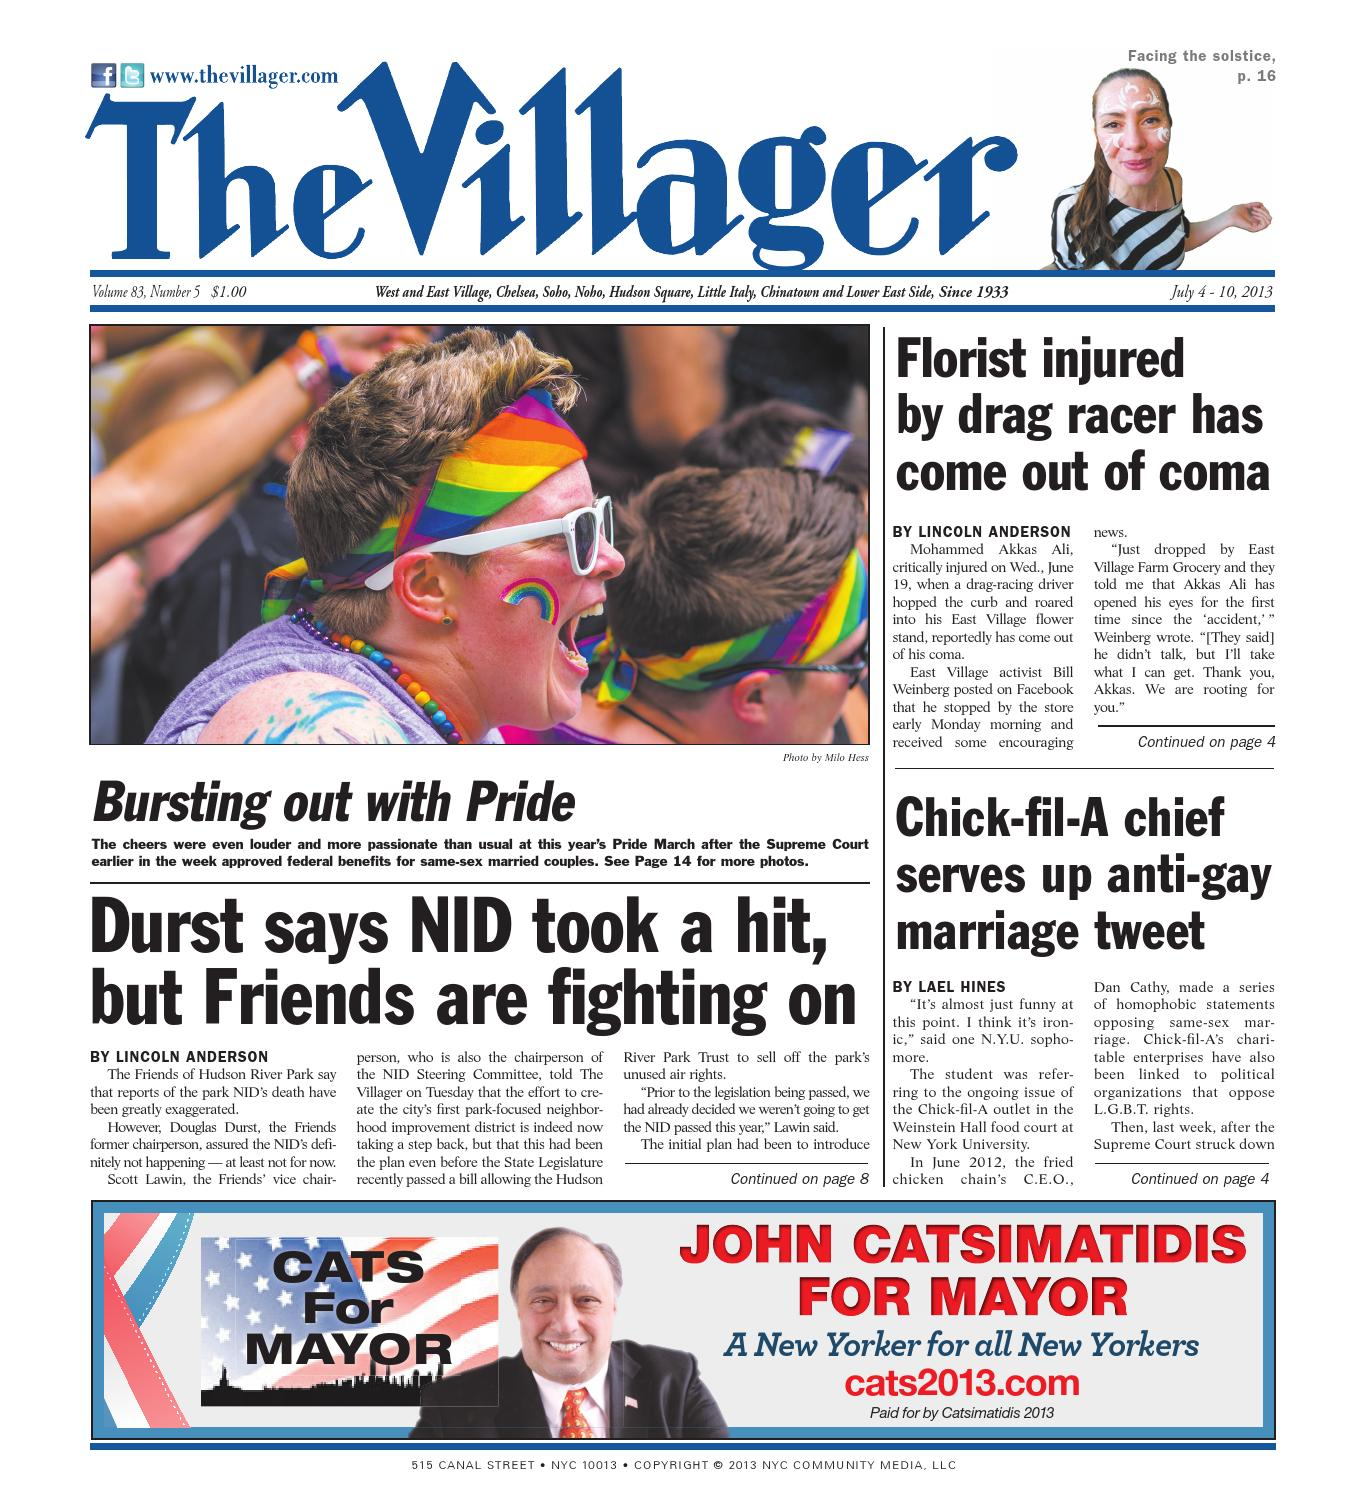 The Villager, July 4, 2013